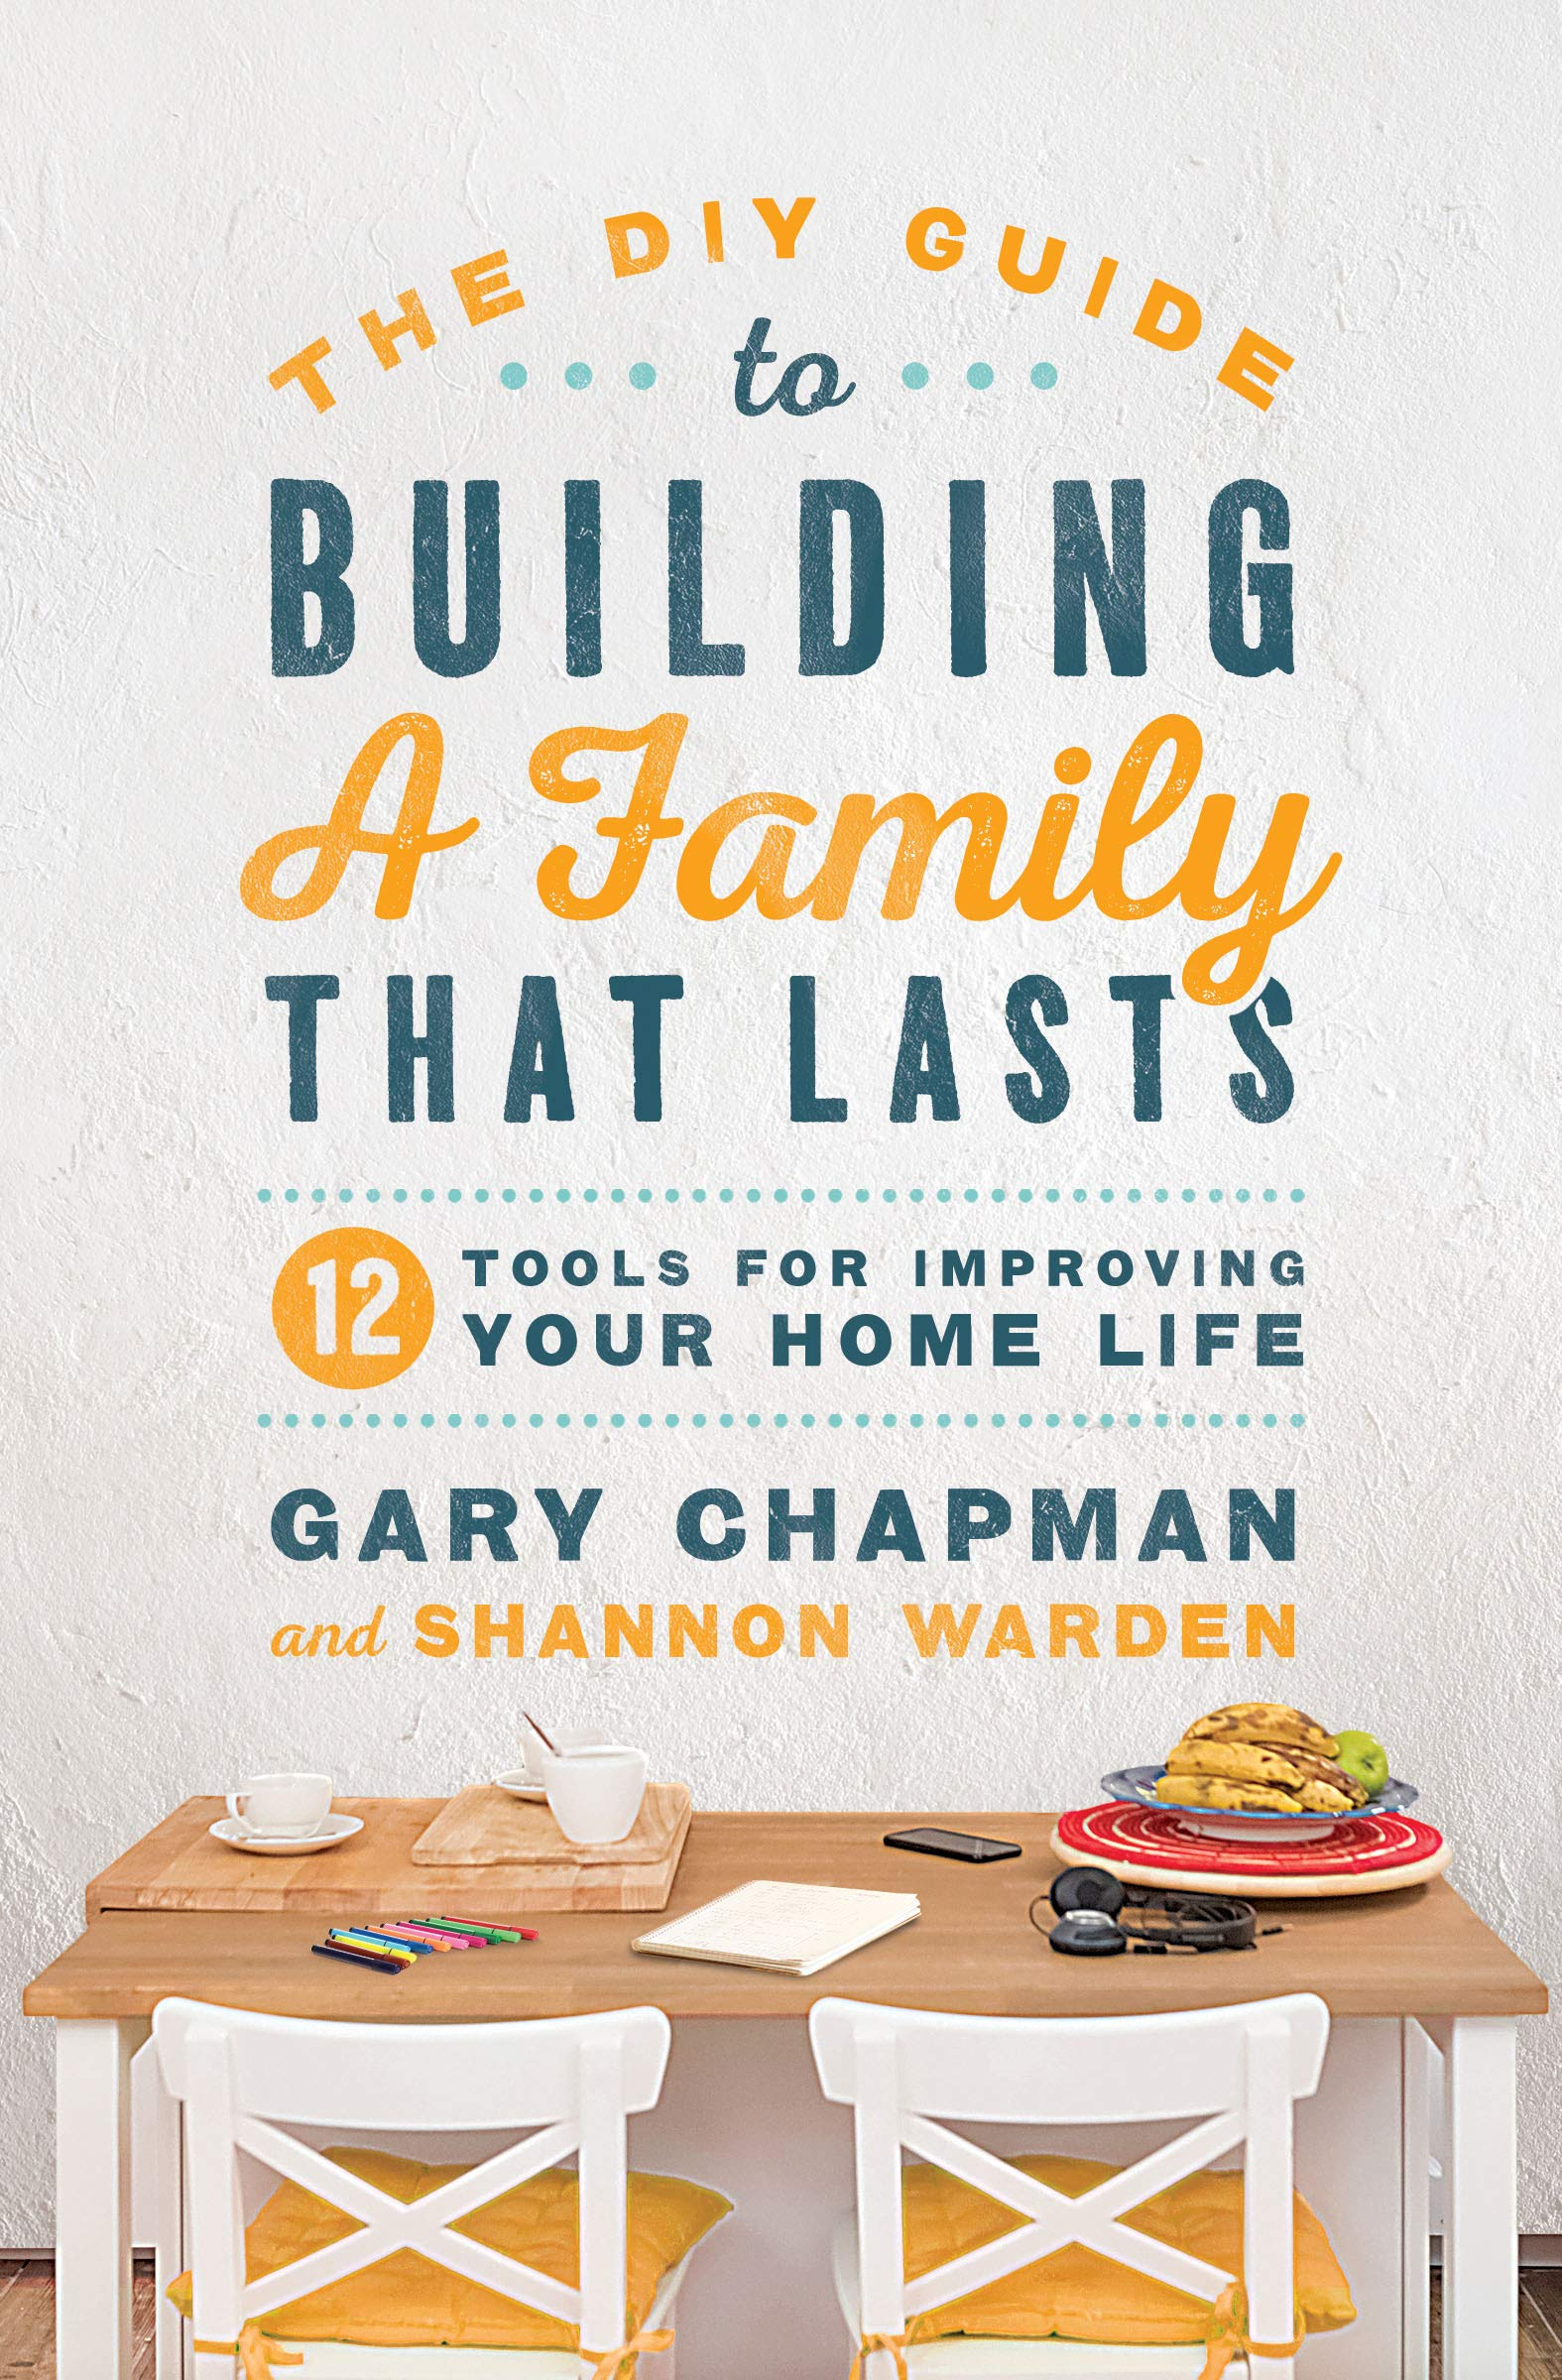 More information on DIY Guide To Building a FamilyThat Lasts